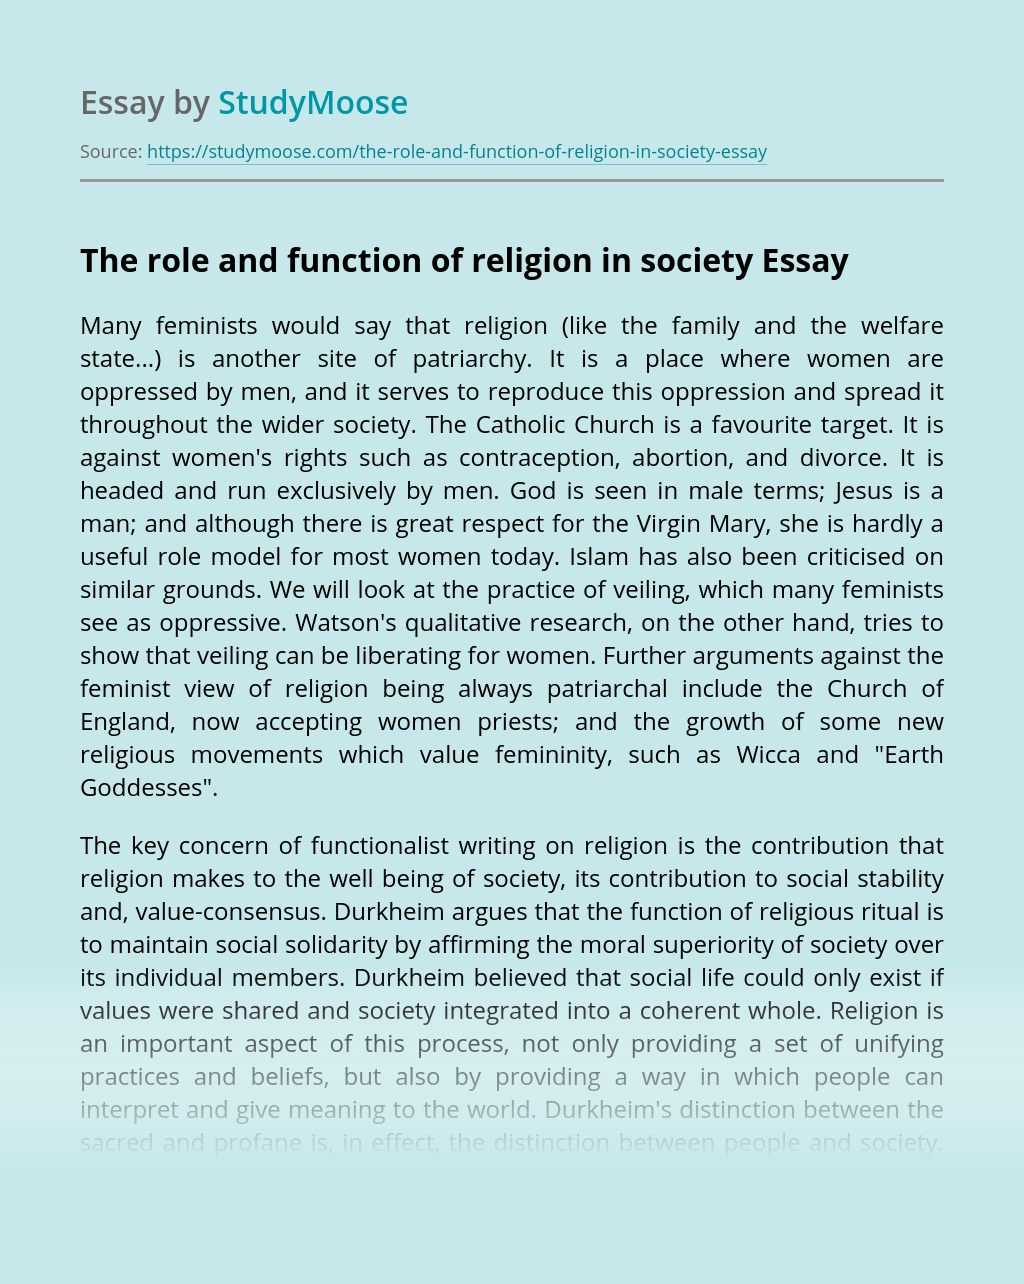 The role and function of religion in society